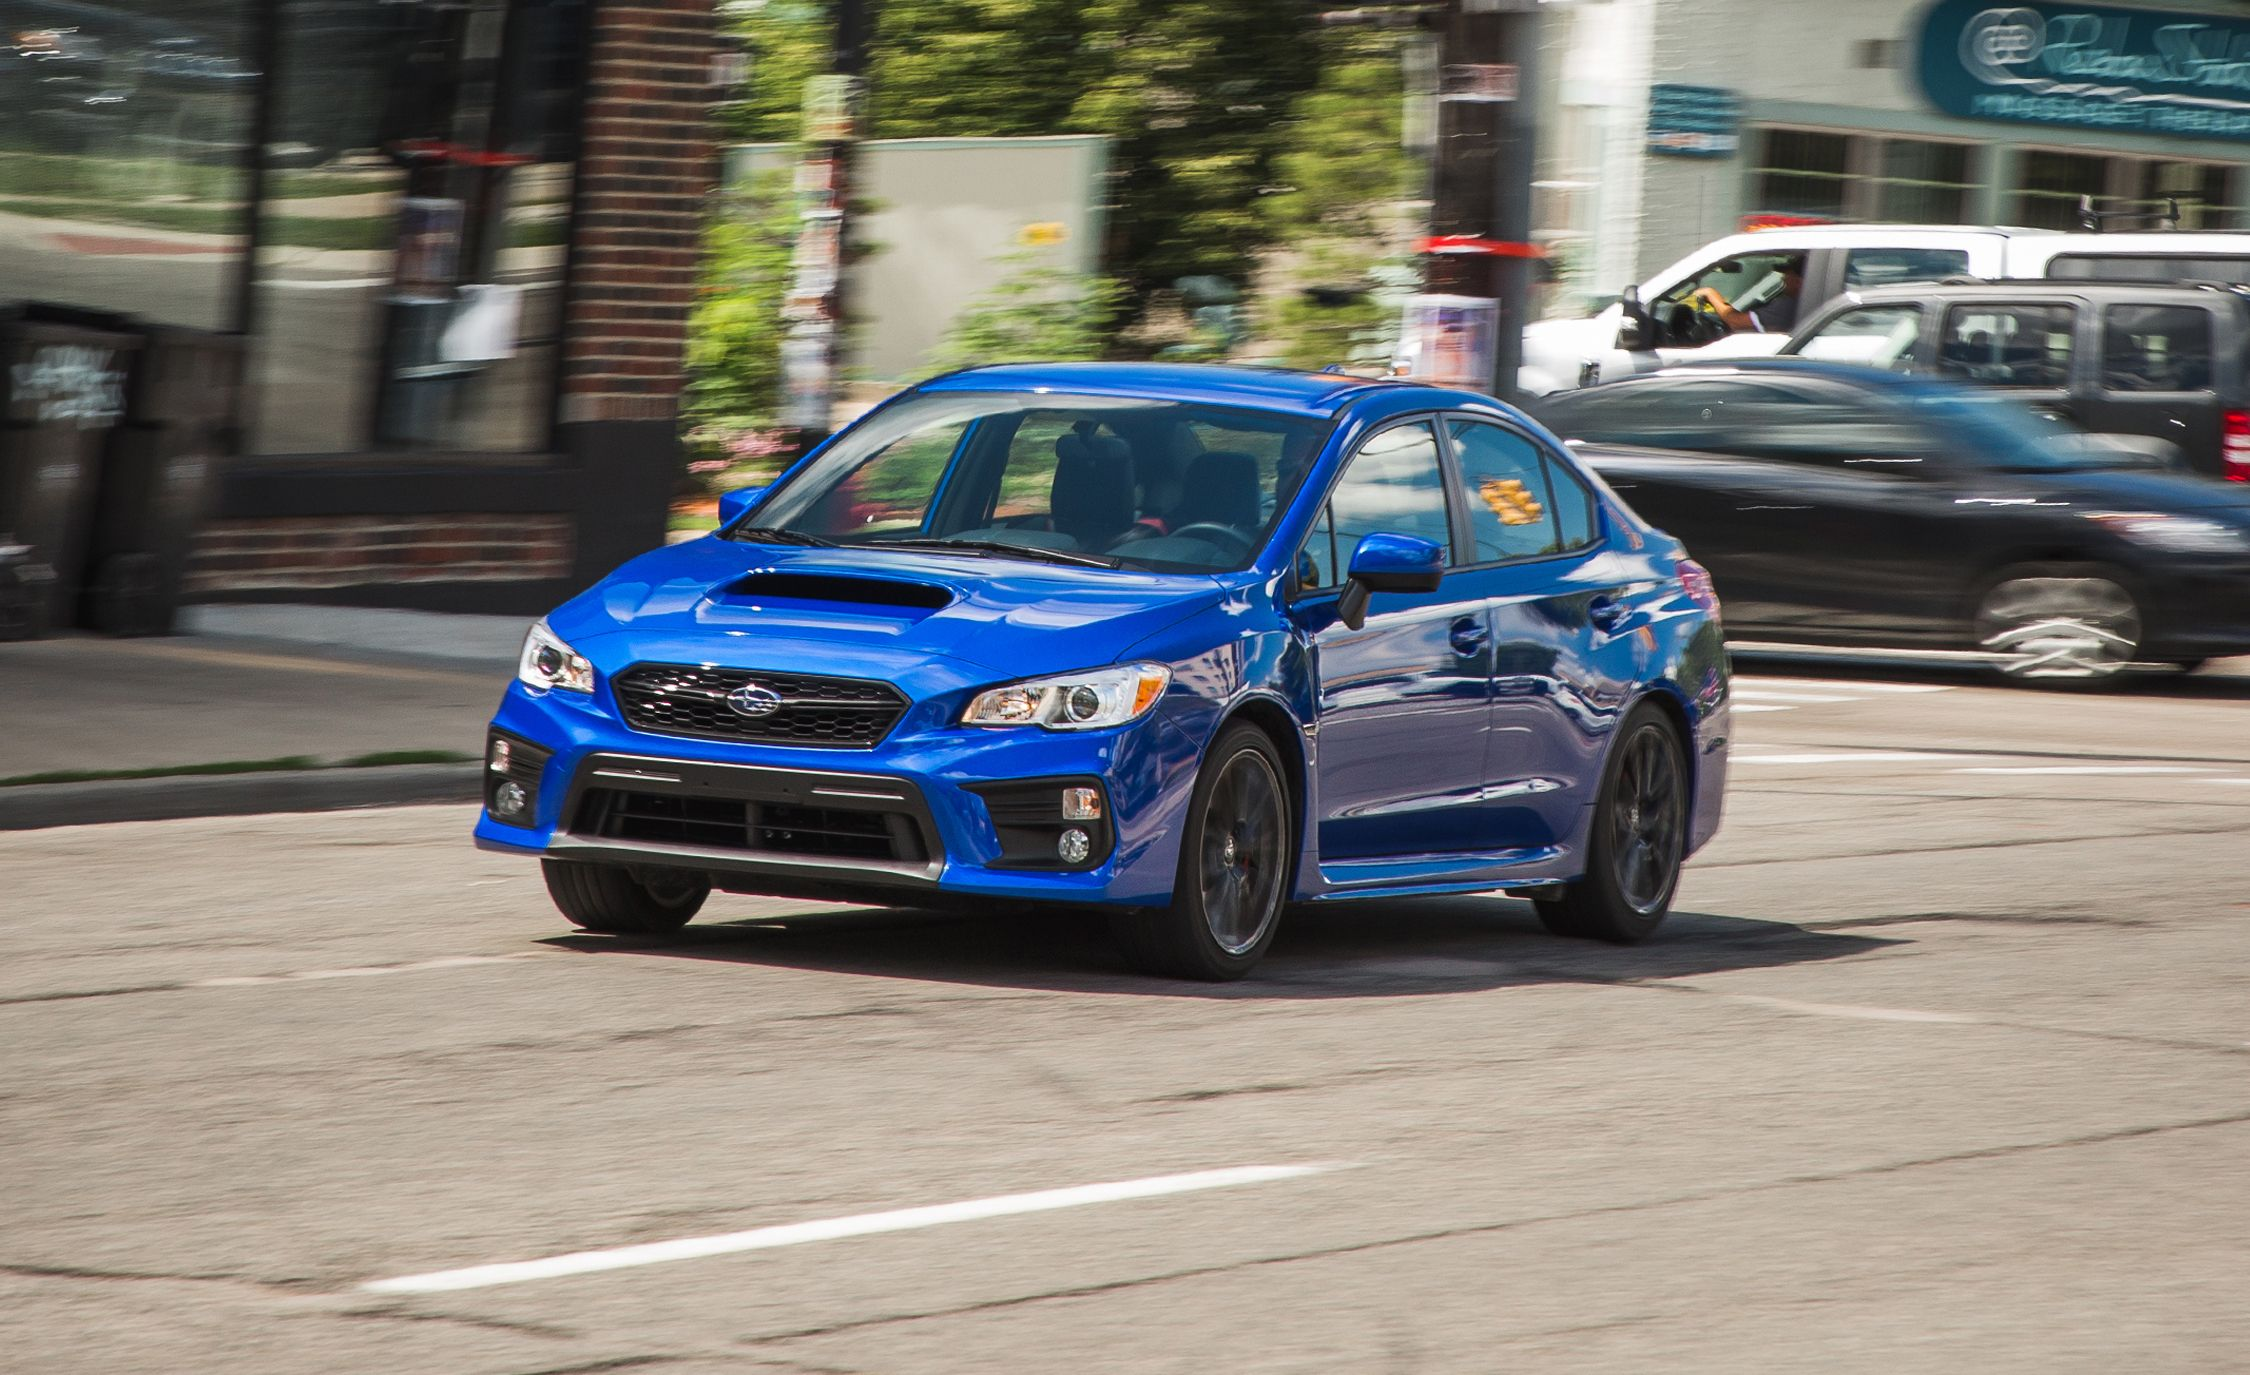 Subaru Wrx Sti Global Rallycross Car First Drive Review And Driver